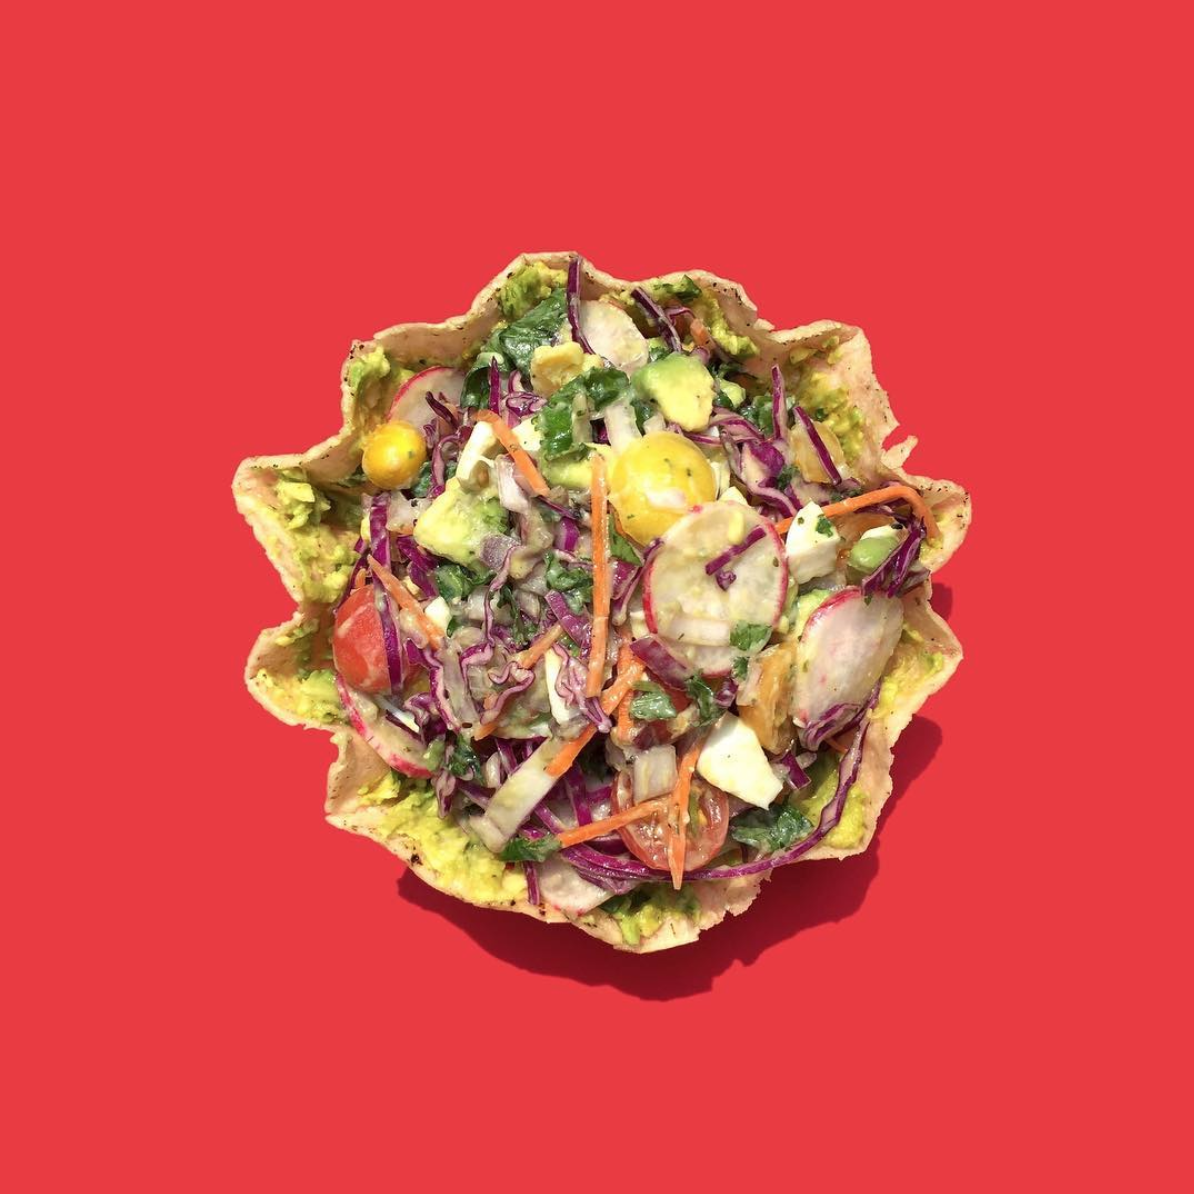 amy_chen_design_taco_shell_salad_healthy_vegan_vegetarian_colorful_food_styling_photography